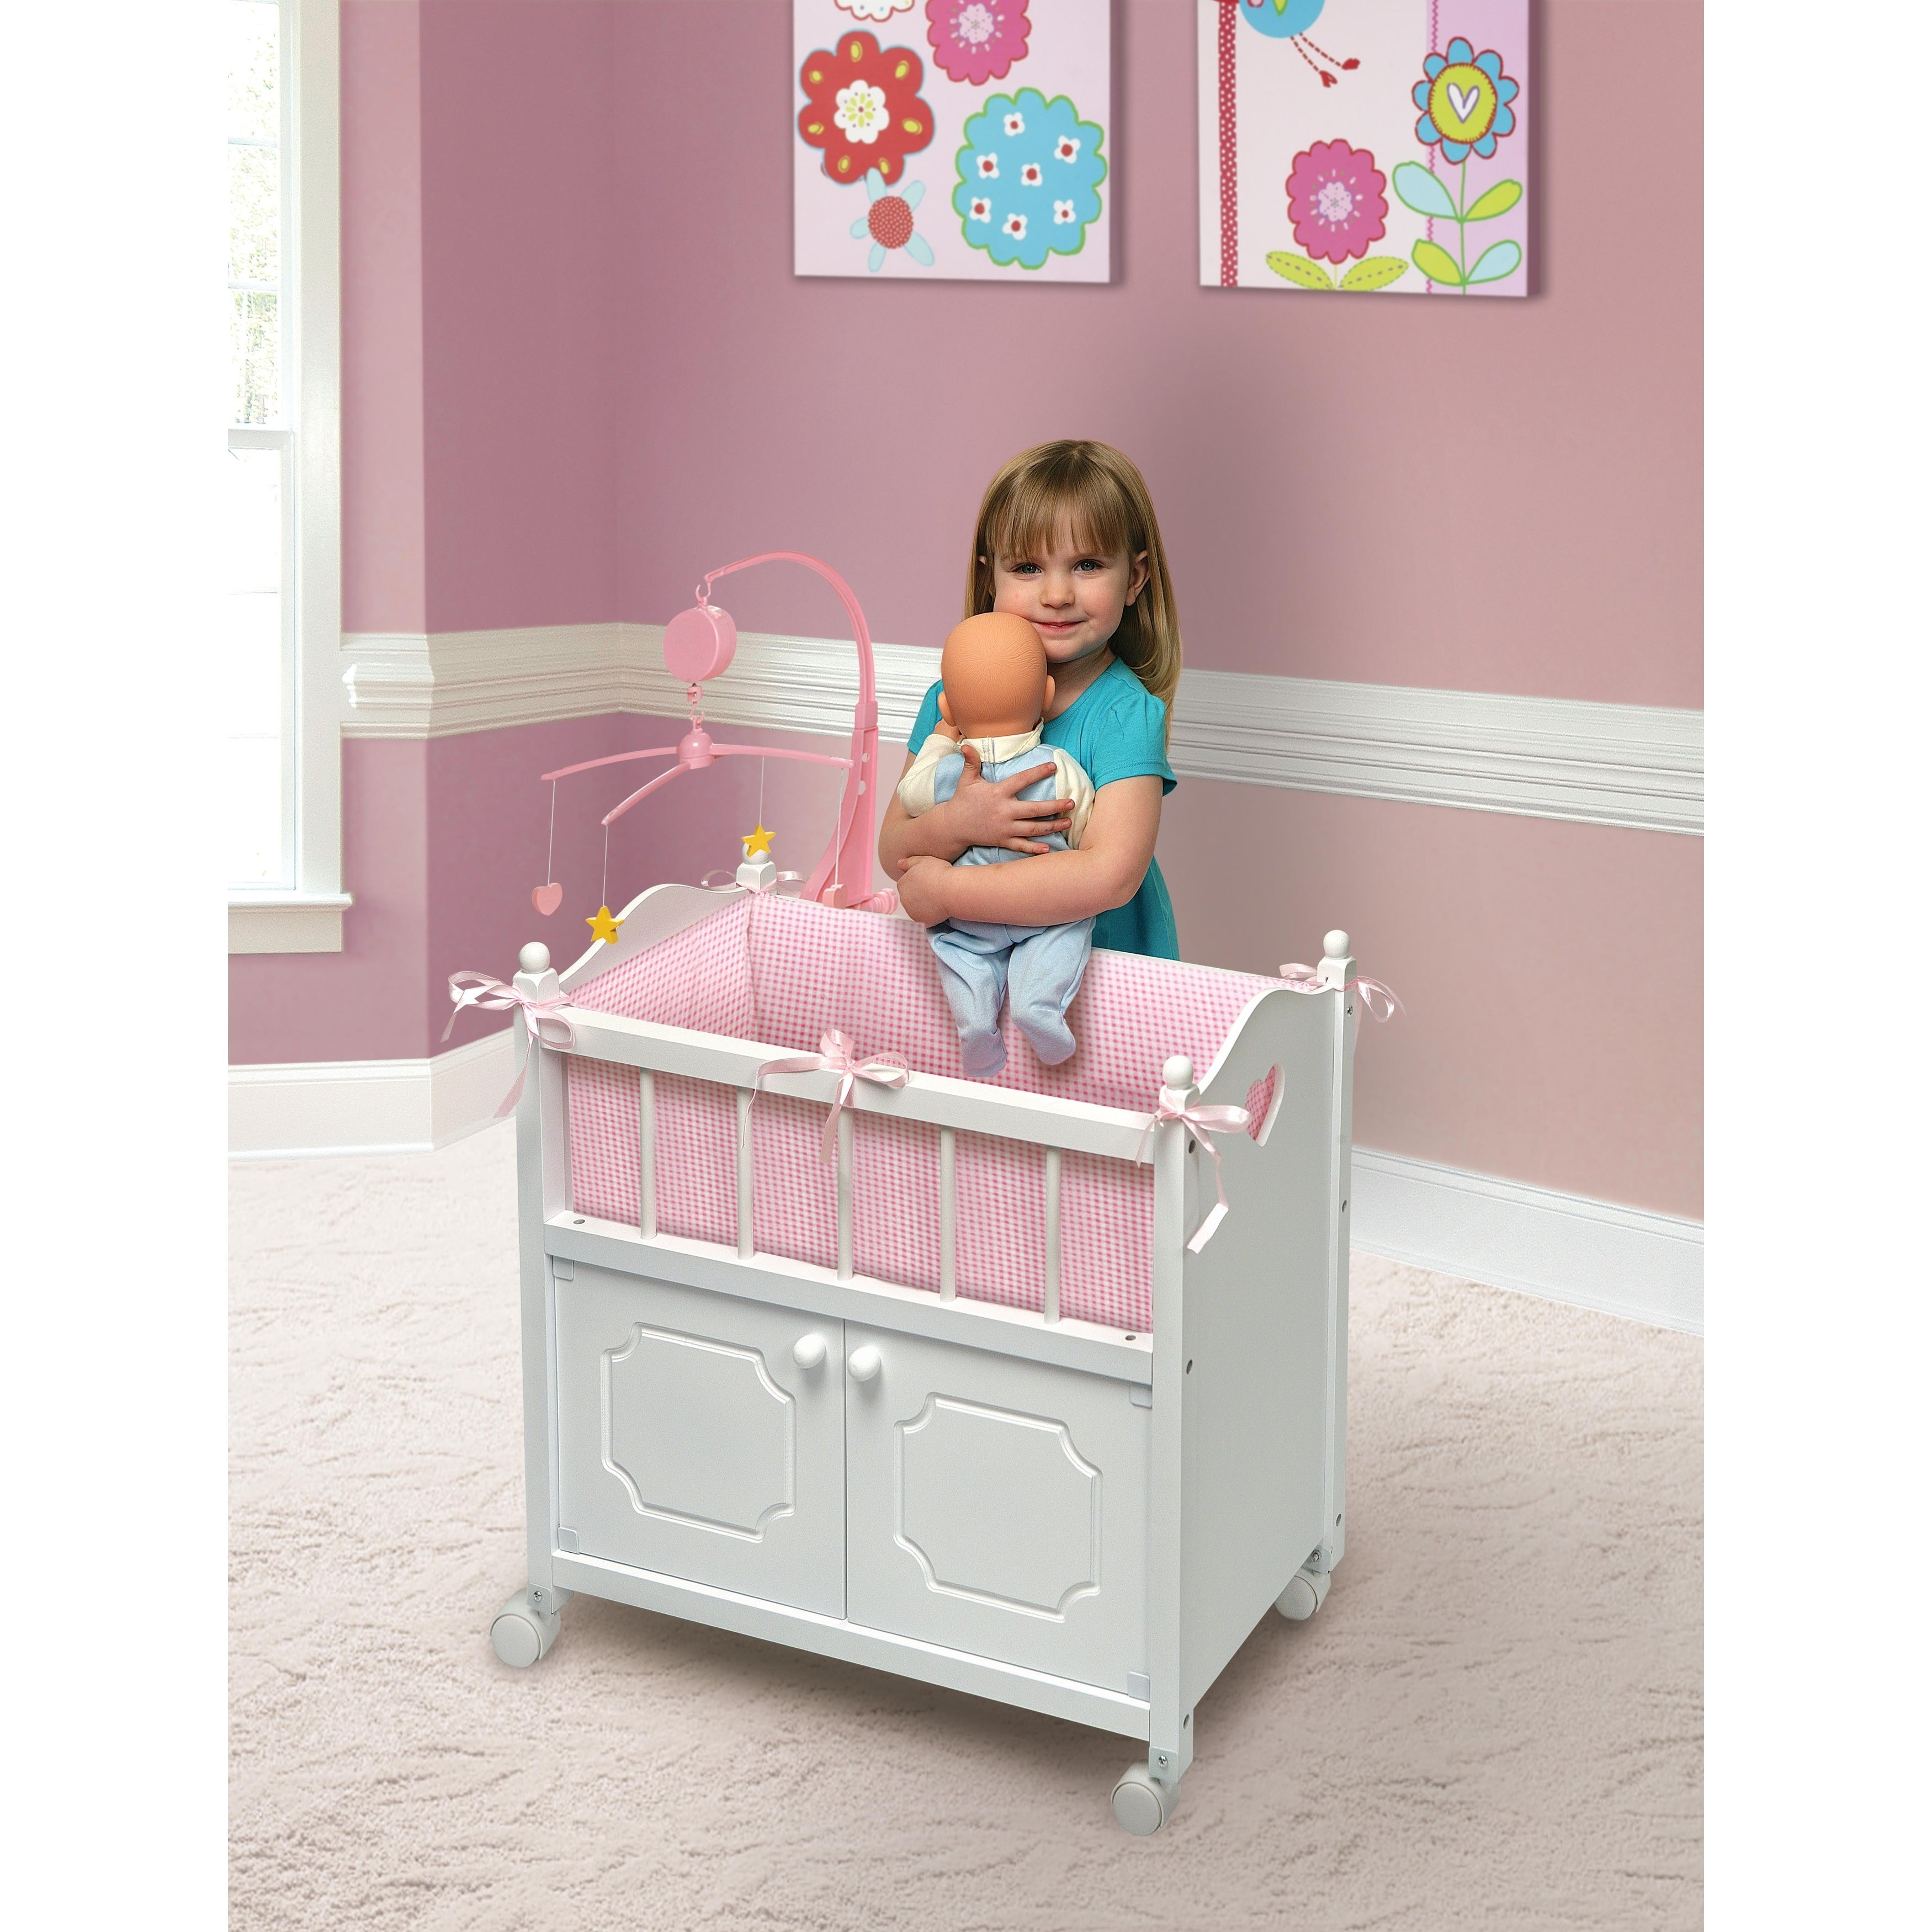 Badger Basket White Doll Crib with Cabinet//Bedding//Mobile//Wheels fits American